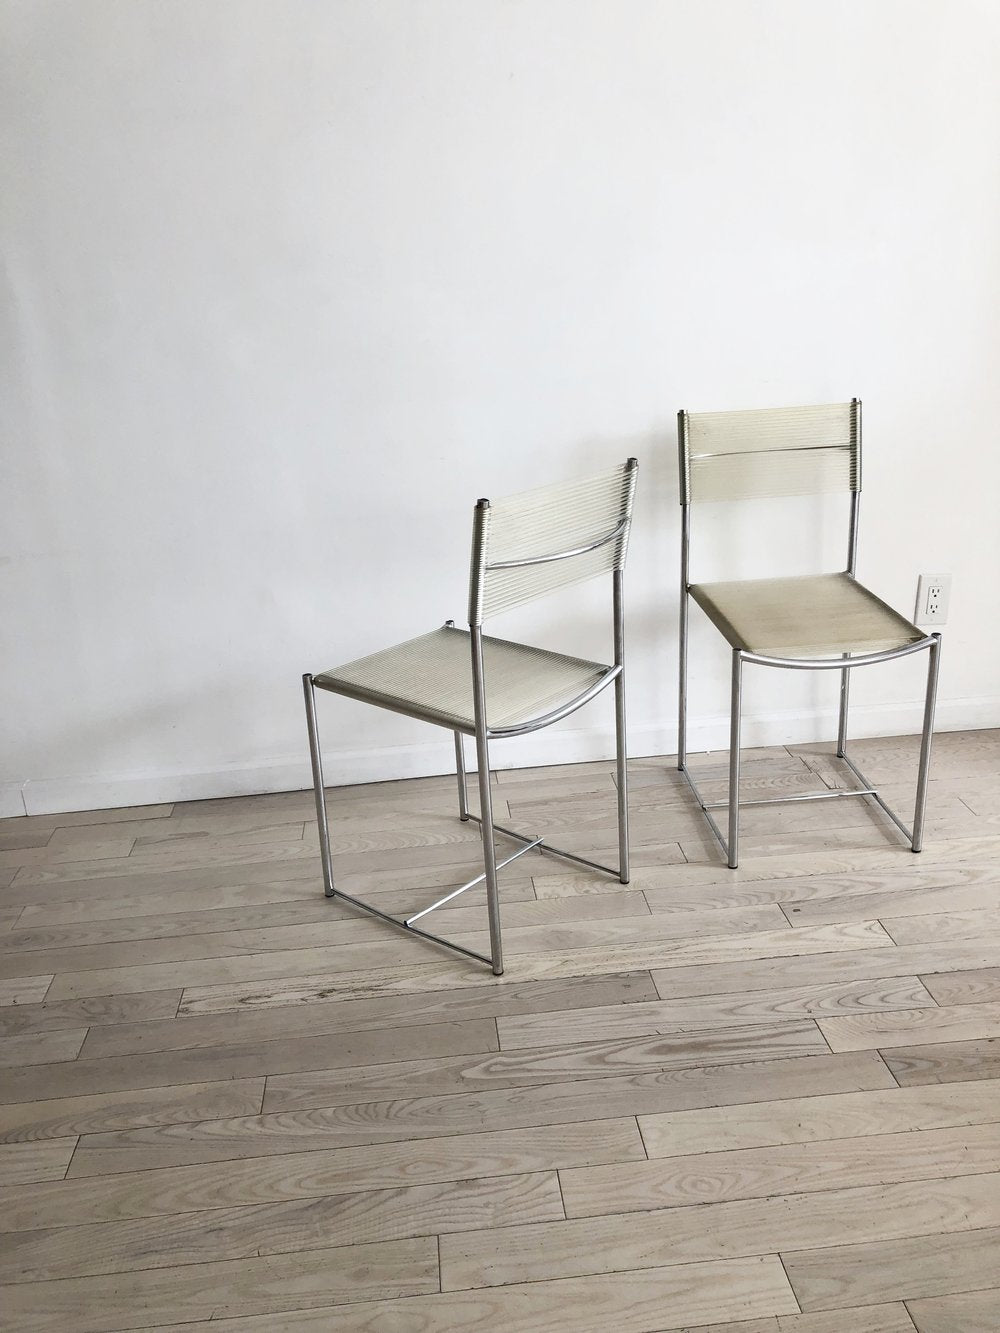 Set of 4, 1970s Italian Clear PVC Spaghetti Chairs by Giandomenico Belotti for Alias